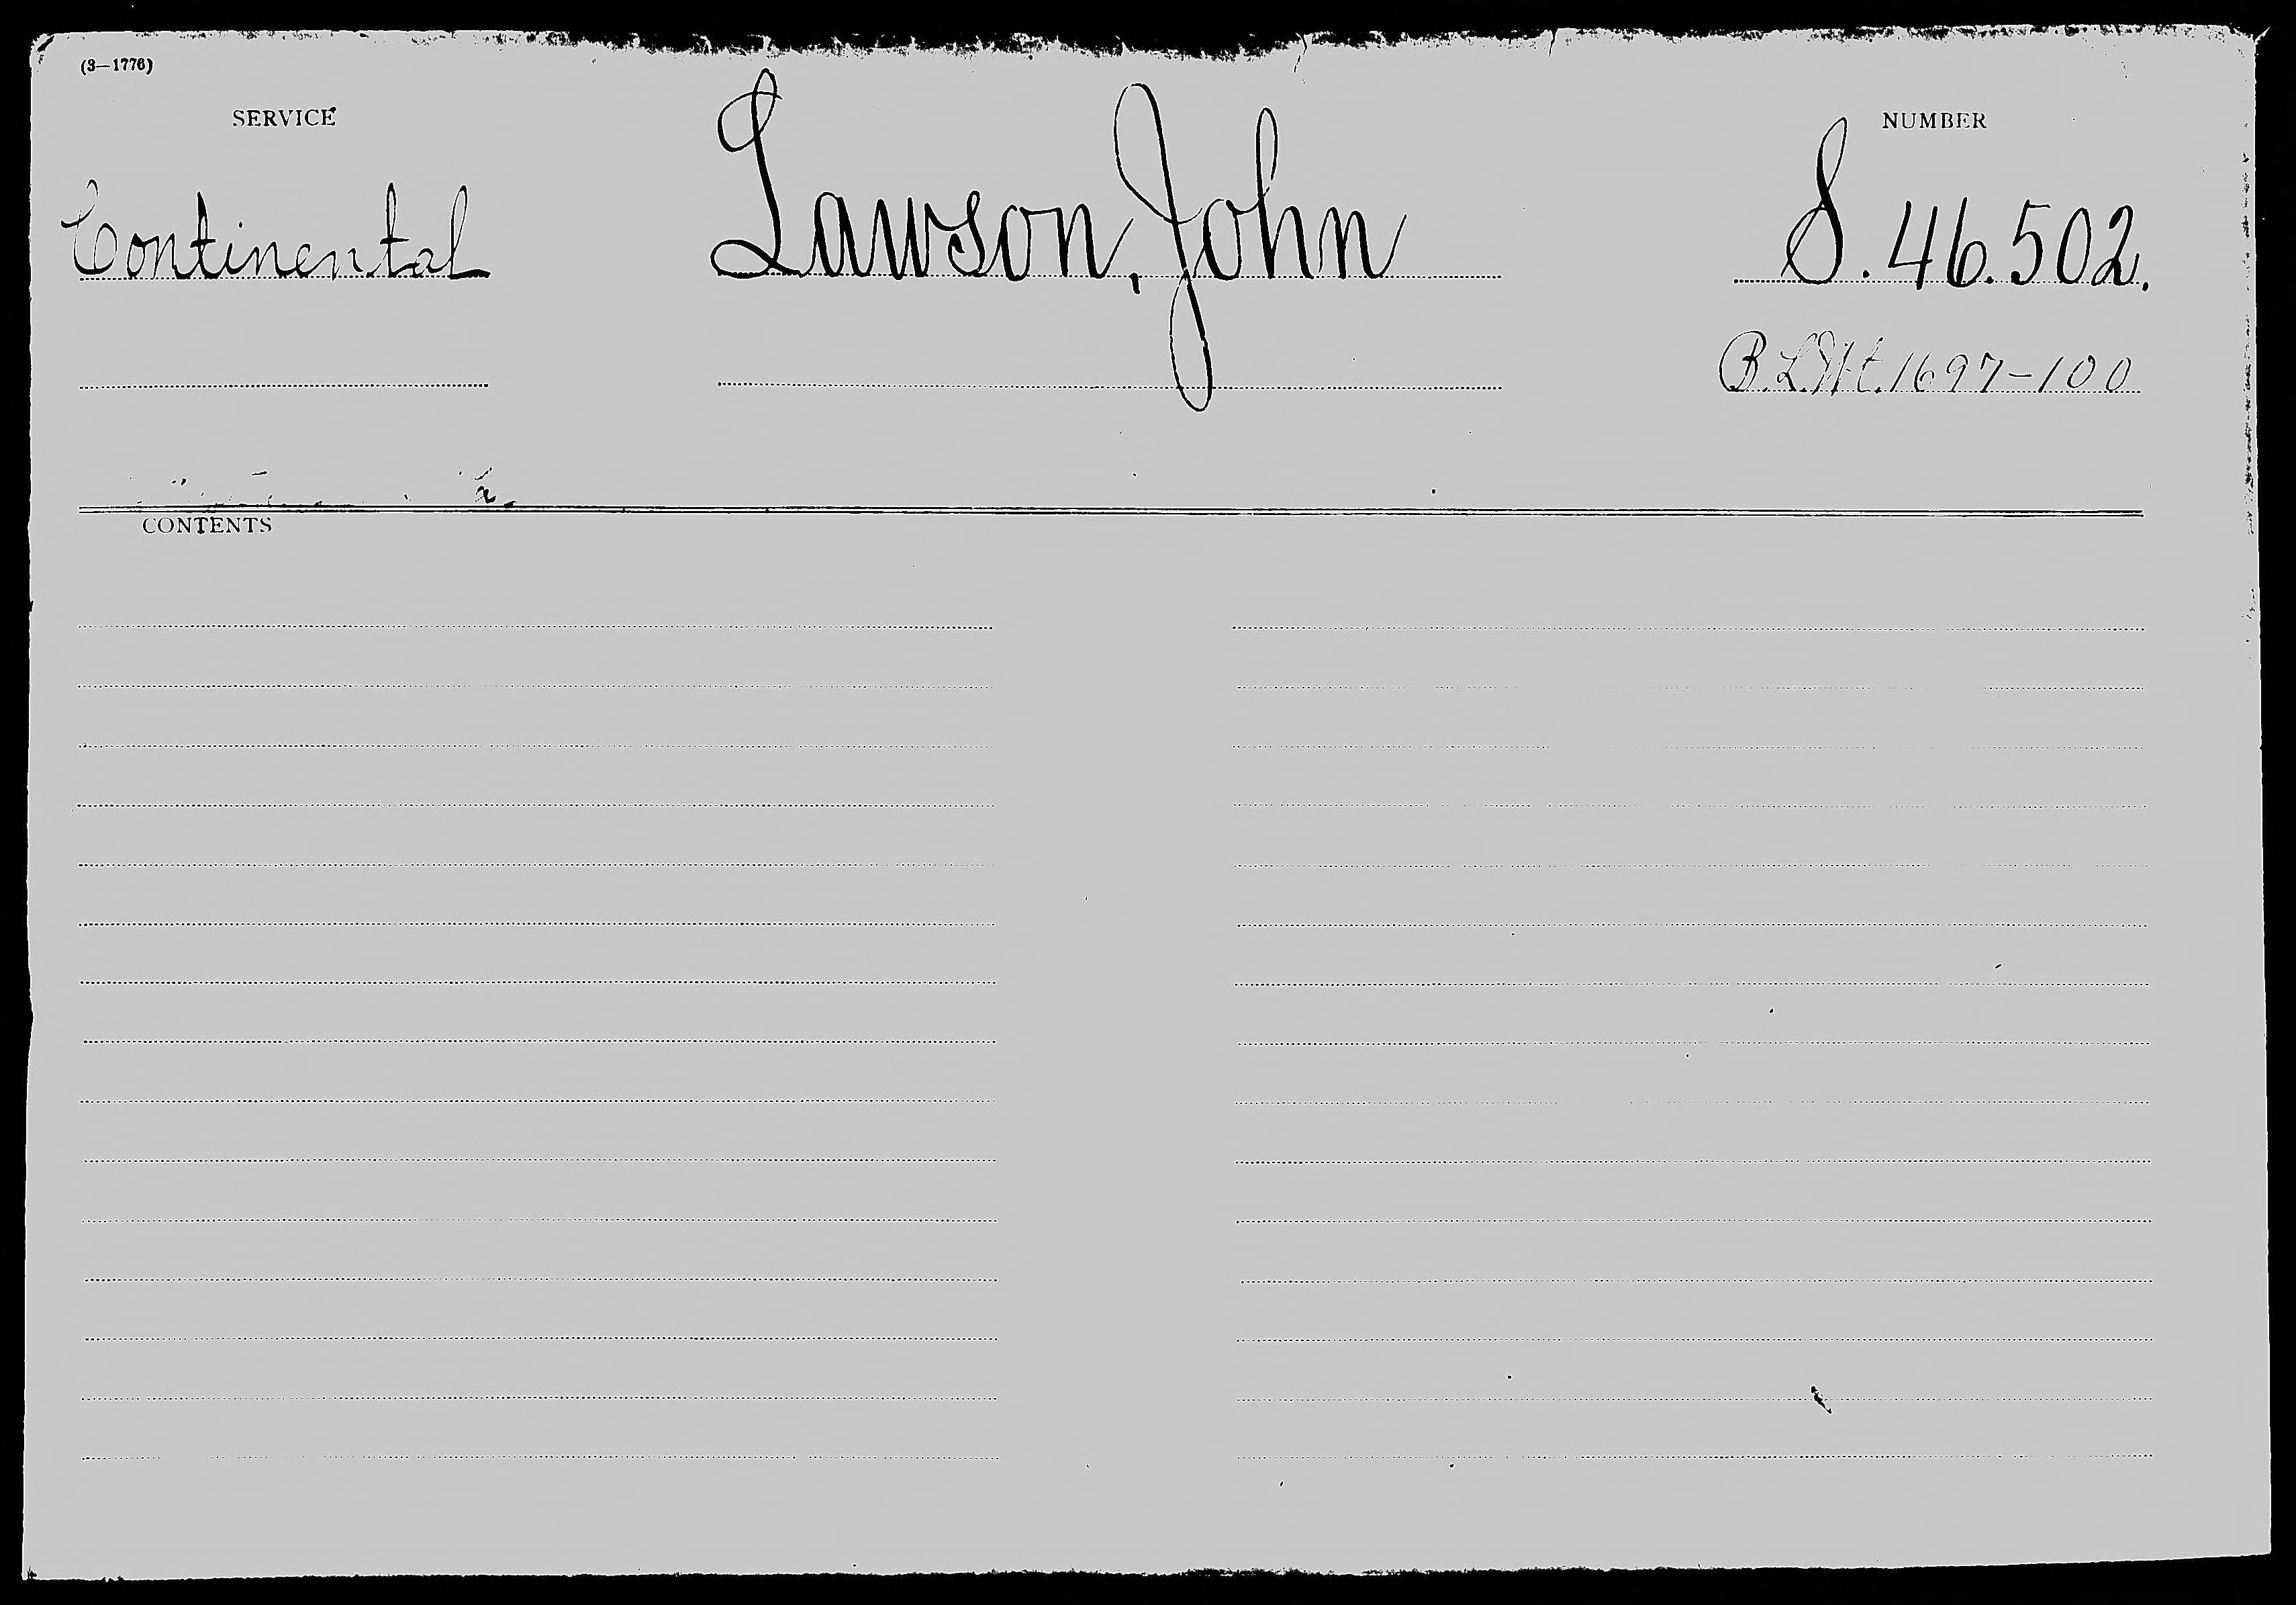 Revolutionary War Pension and Bounty Land Warrant Application File S. 46,502, for John Lawson